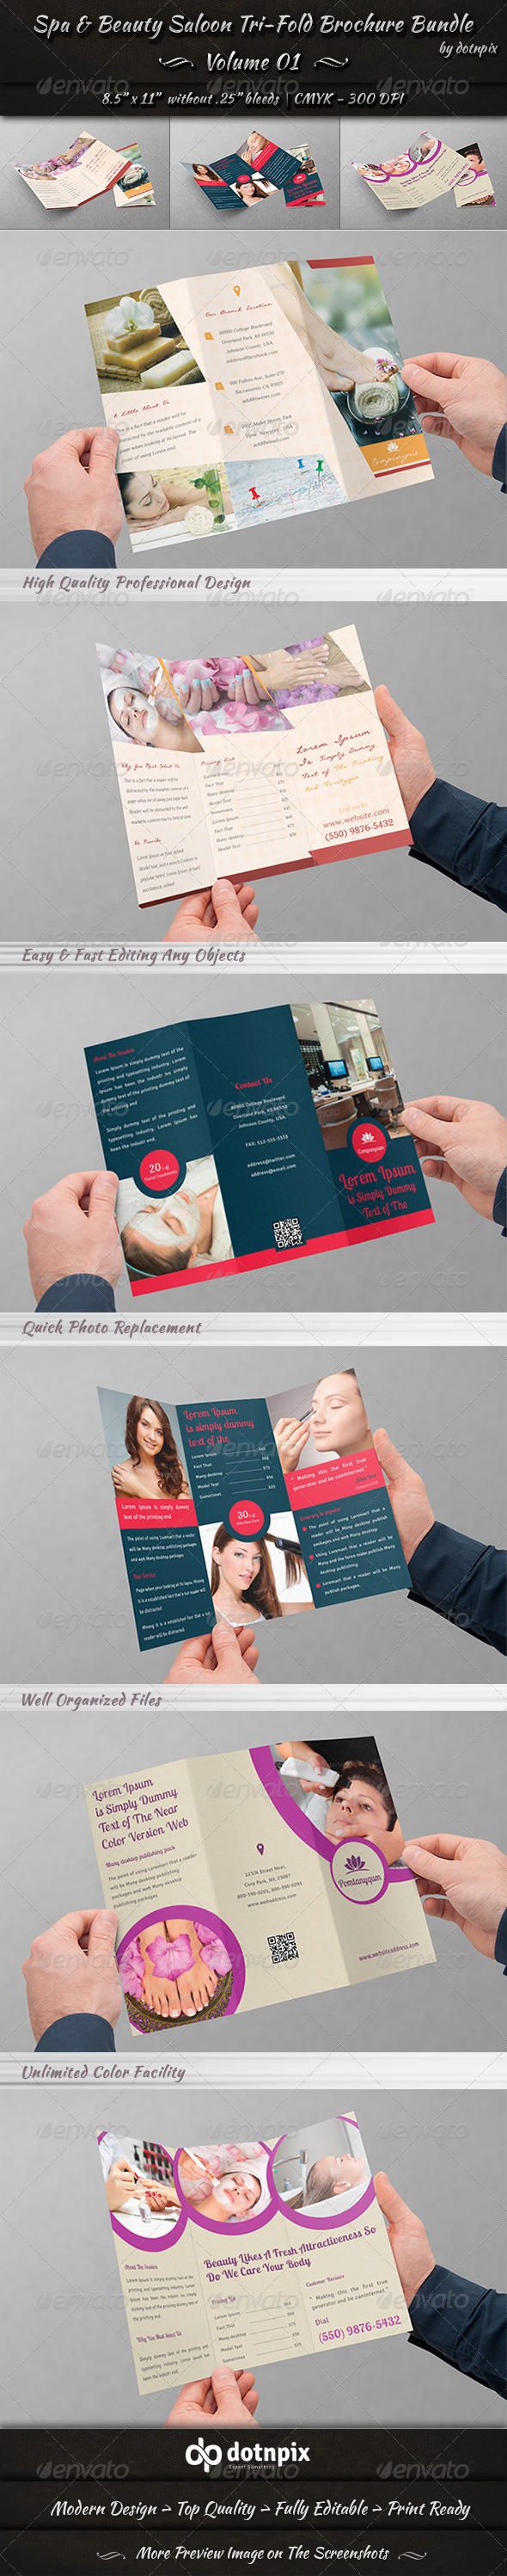 GraphicRiver Spa & Beauty Saloon Tri-fold Brochure Bundle v1 8056135